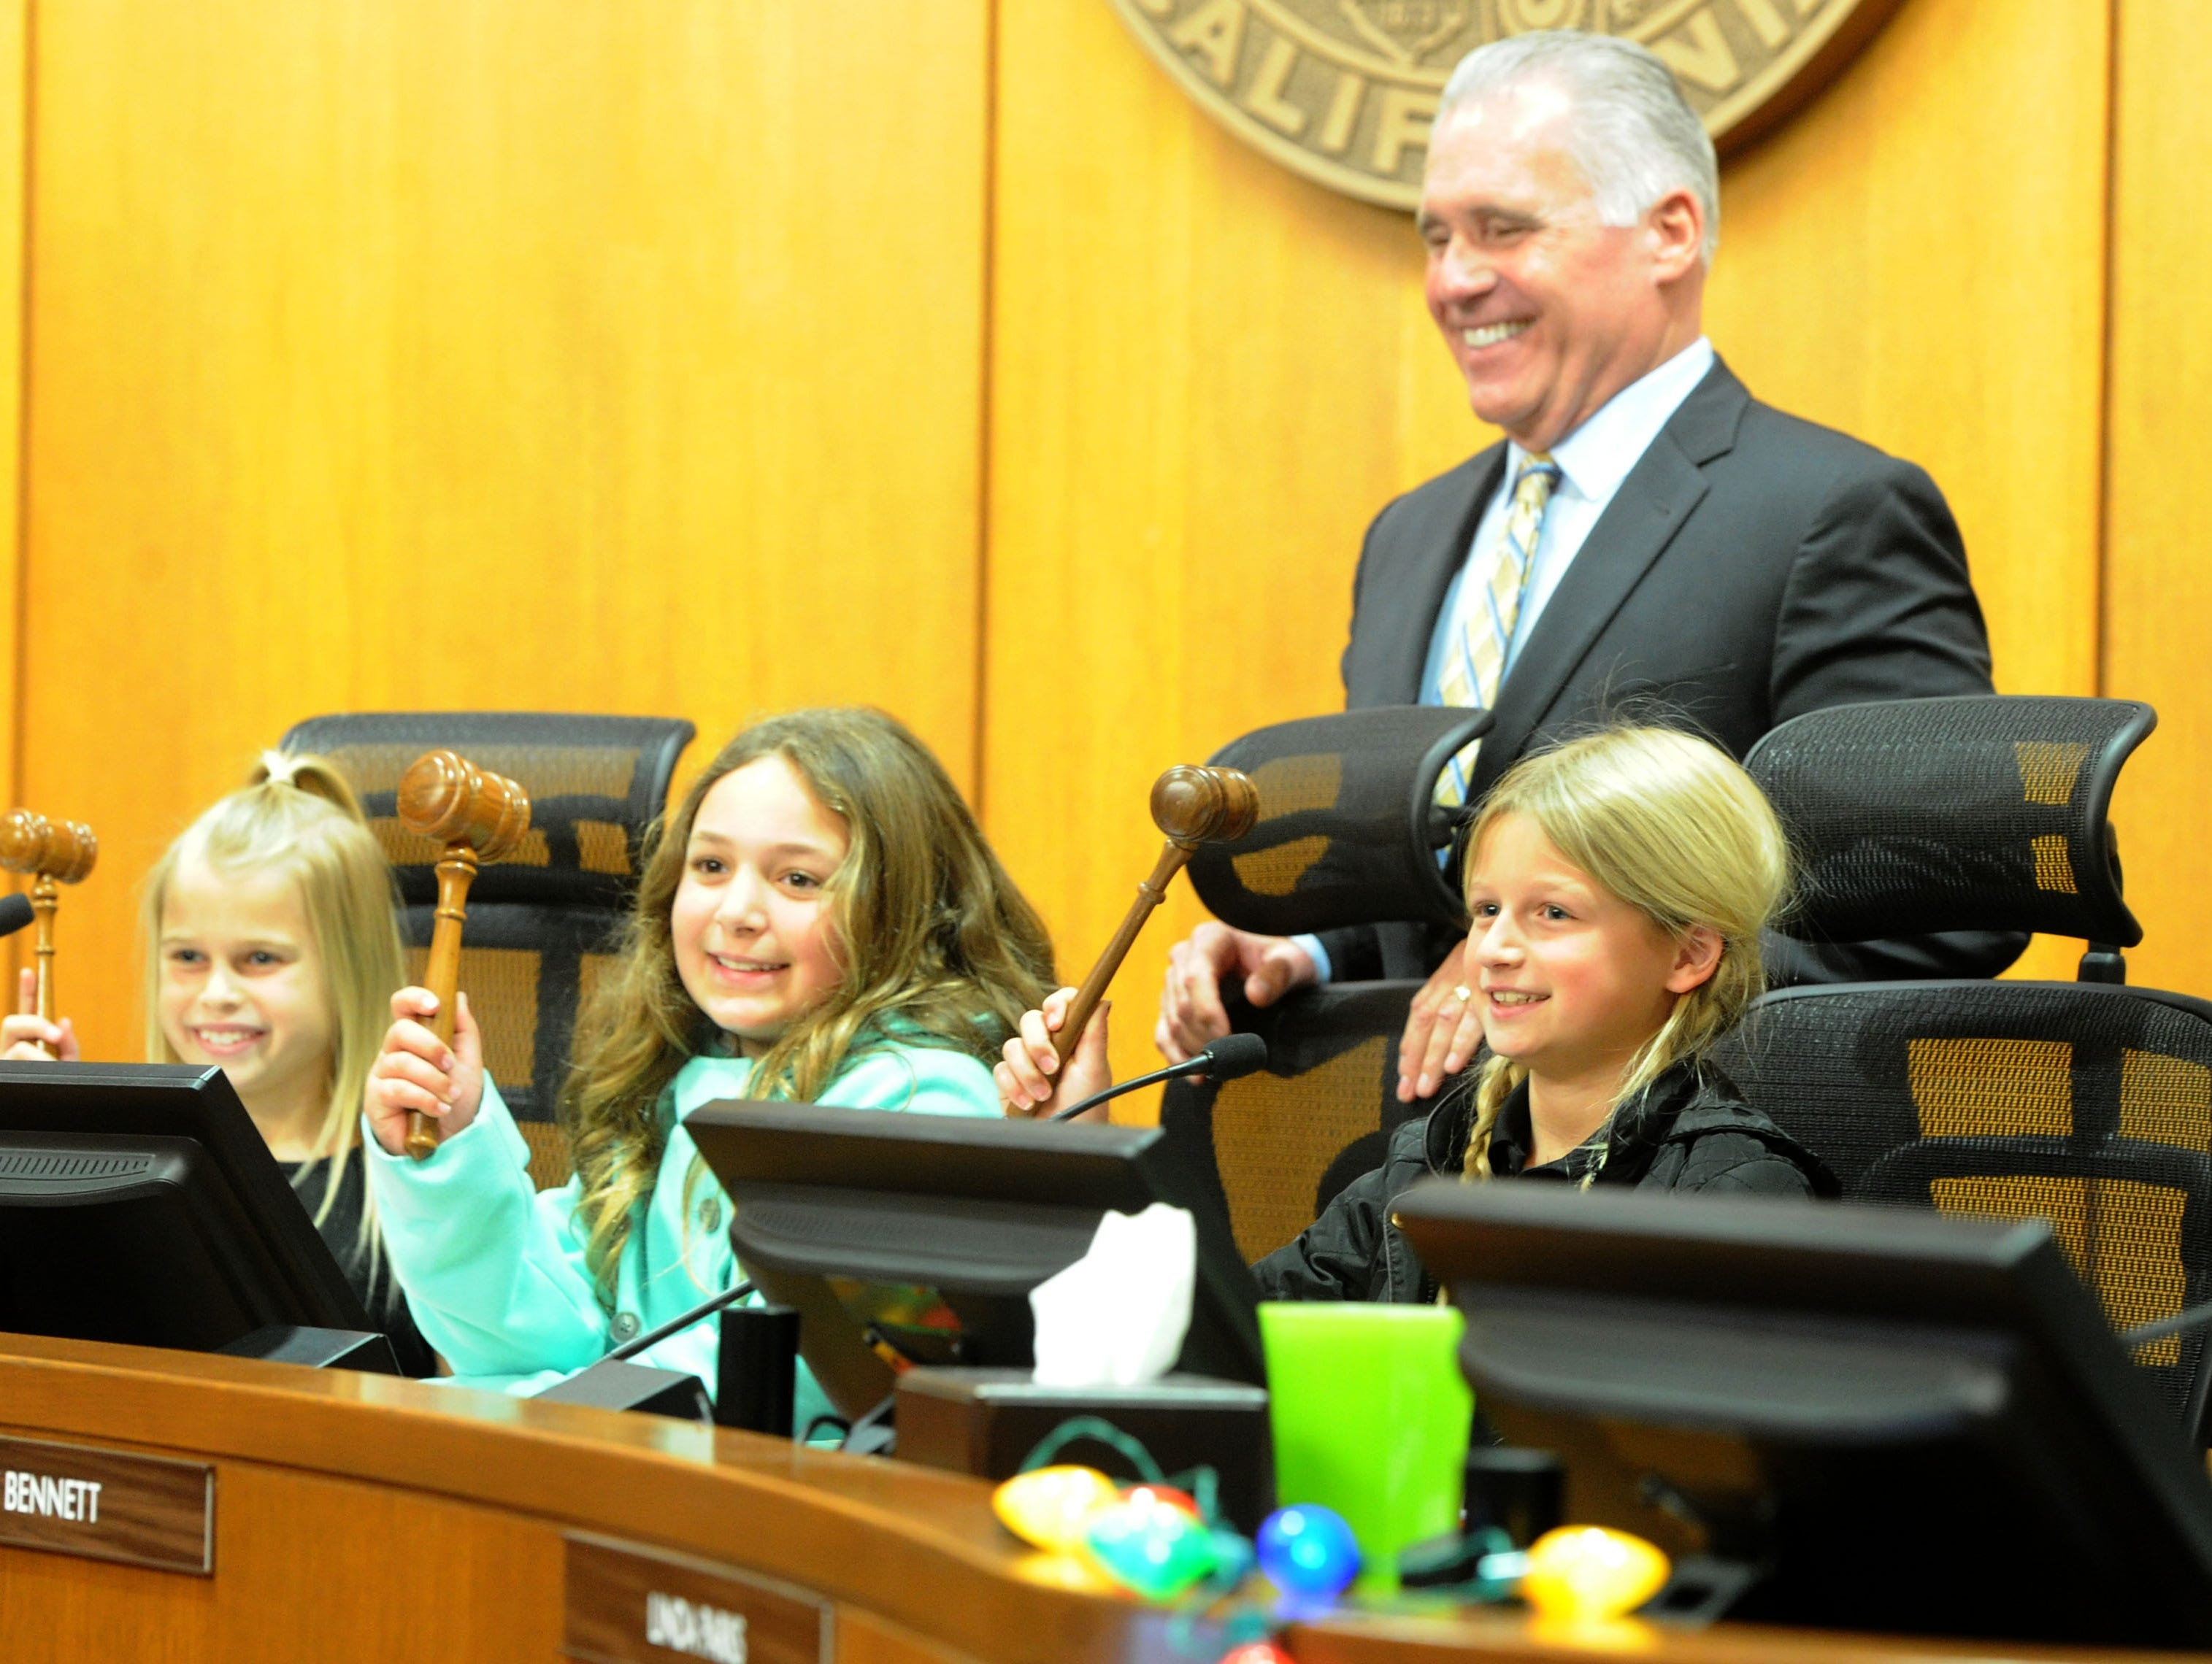 (Left to right) Brynn Baker, 7; Brielle Basson, 9; and Brooke Baker, 9, pose with their grandfather, Supervisor Peter Foy, as he is recognized Tuesday during his last meeting asa member of the Board of Supervisors.